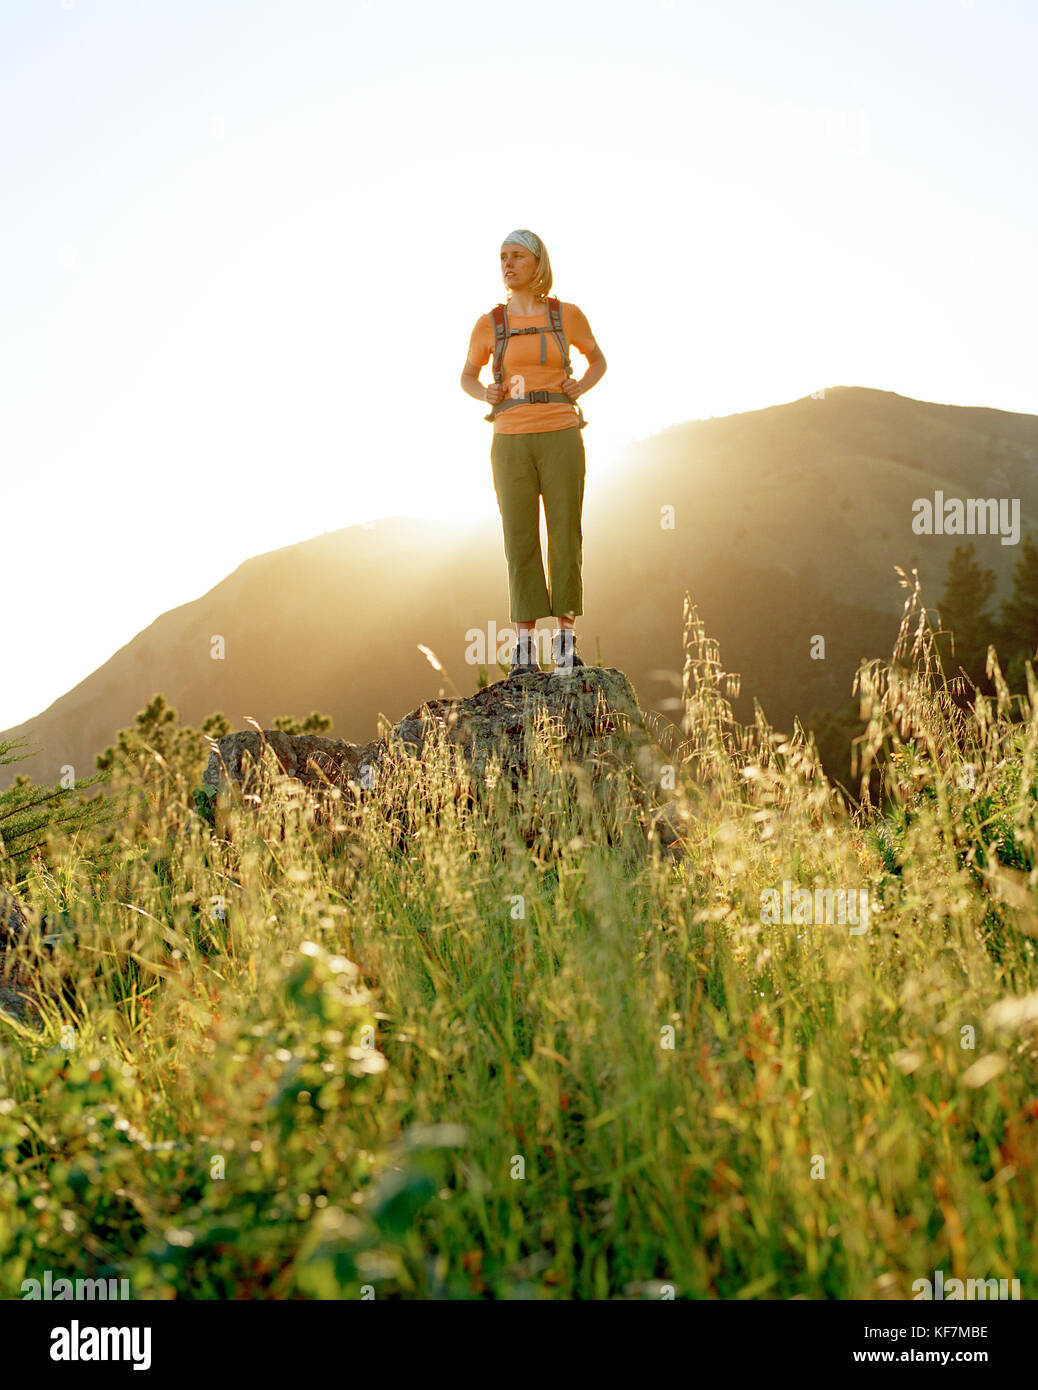 USA, California, Marin Headlands, young woman hiking and standing on a rock in front of Mount Tamalpais - Stock Image